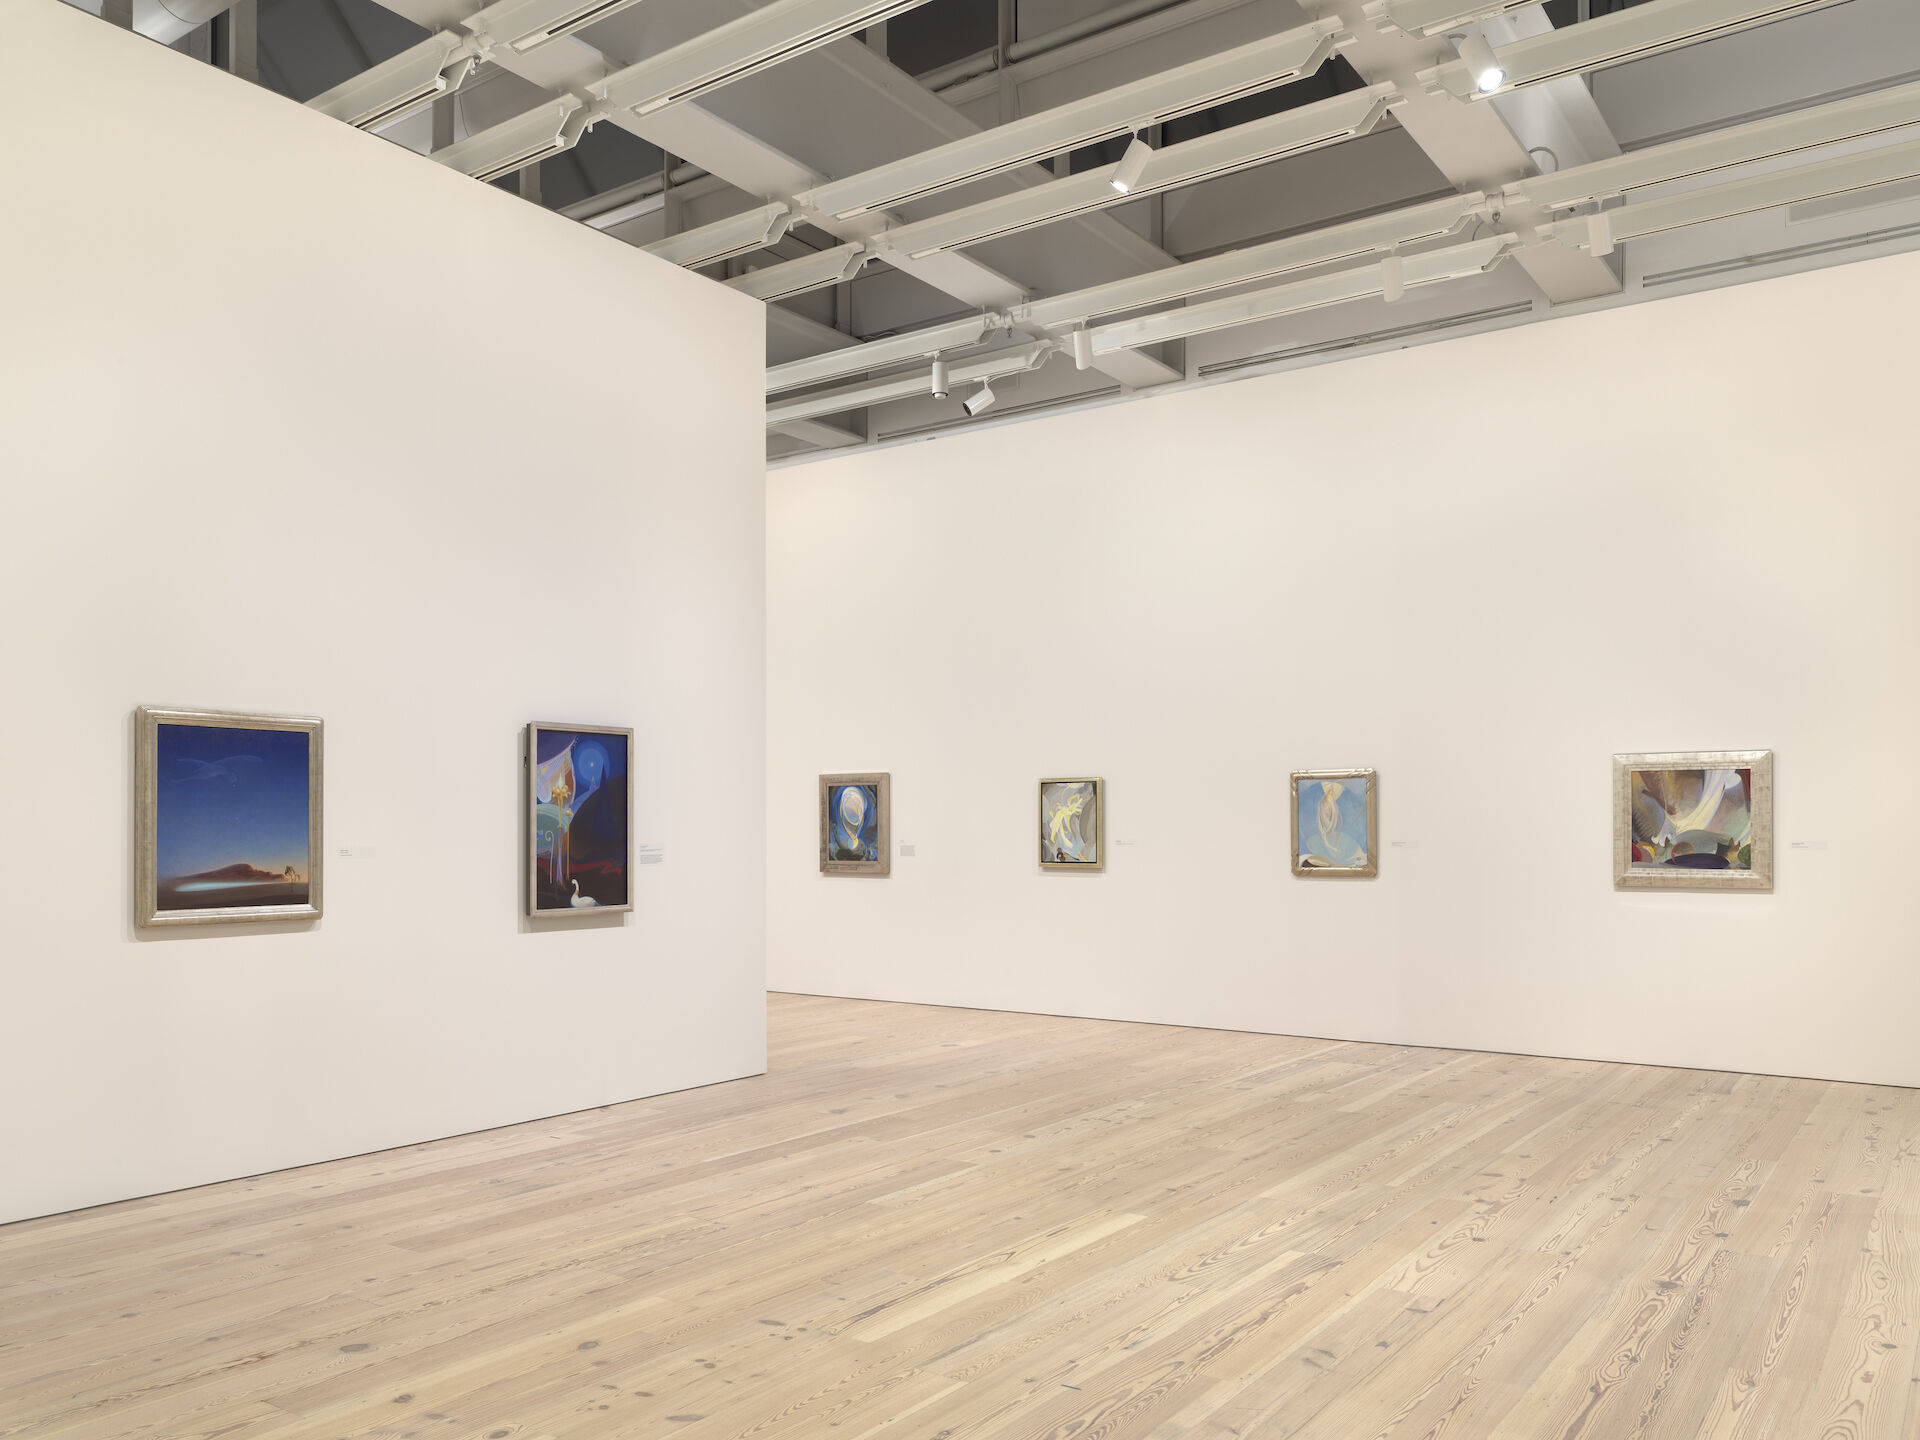 Paintings appear on white walls at the Whitney from the exhibition, Agnes Pelton: Desert Transcendentalist. The paintings that appear rrom left to right are: Return, 1940; Ahmi in Egypt, 1931; Being, 1926; Ecstasy, 1928; Meadowlark's Song, Winter, 1926; The Ray Serene, 1925.